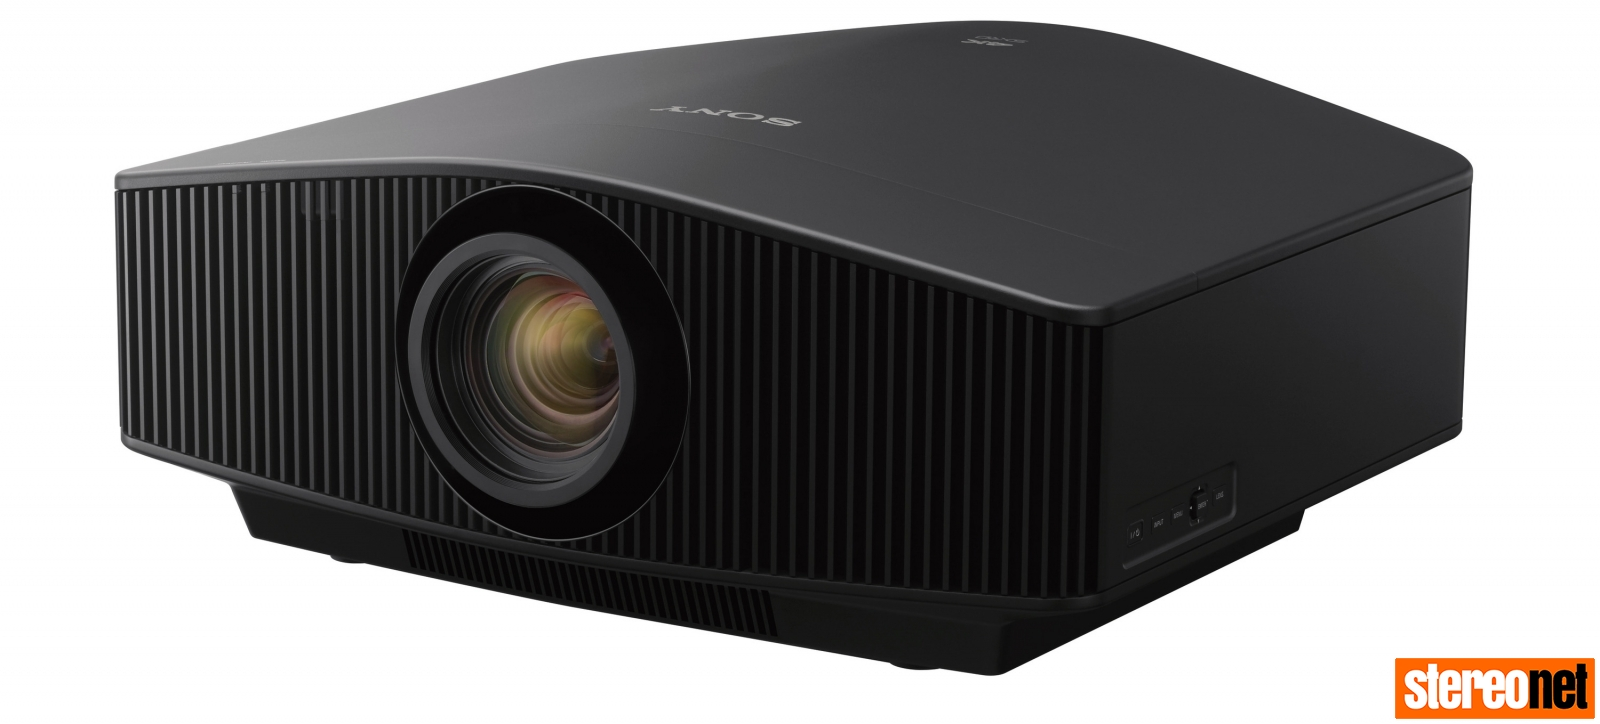 Sony 4k Projector Demonstration Night At Big Picture